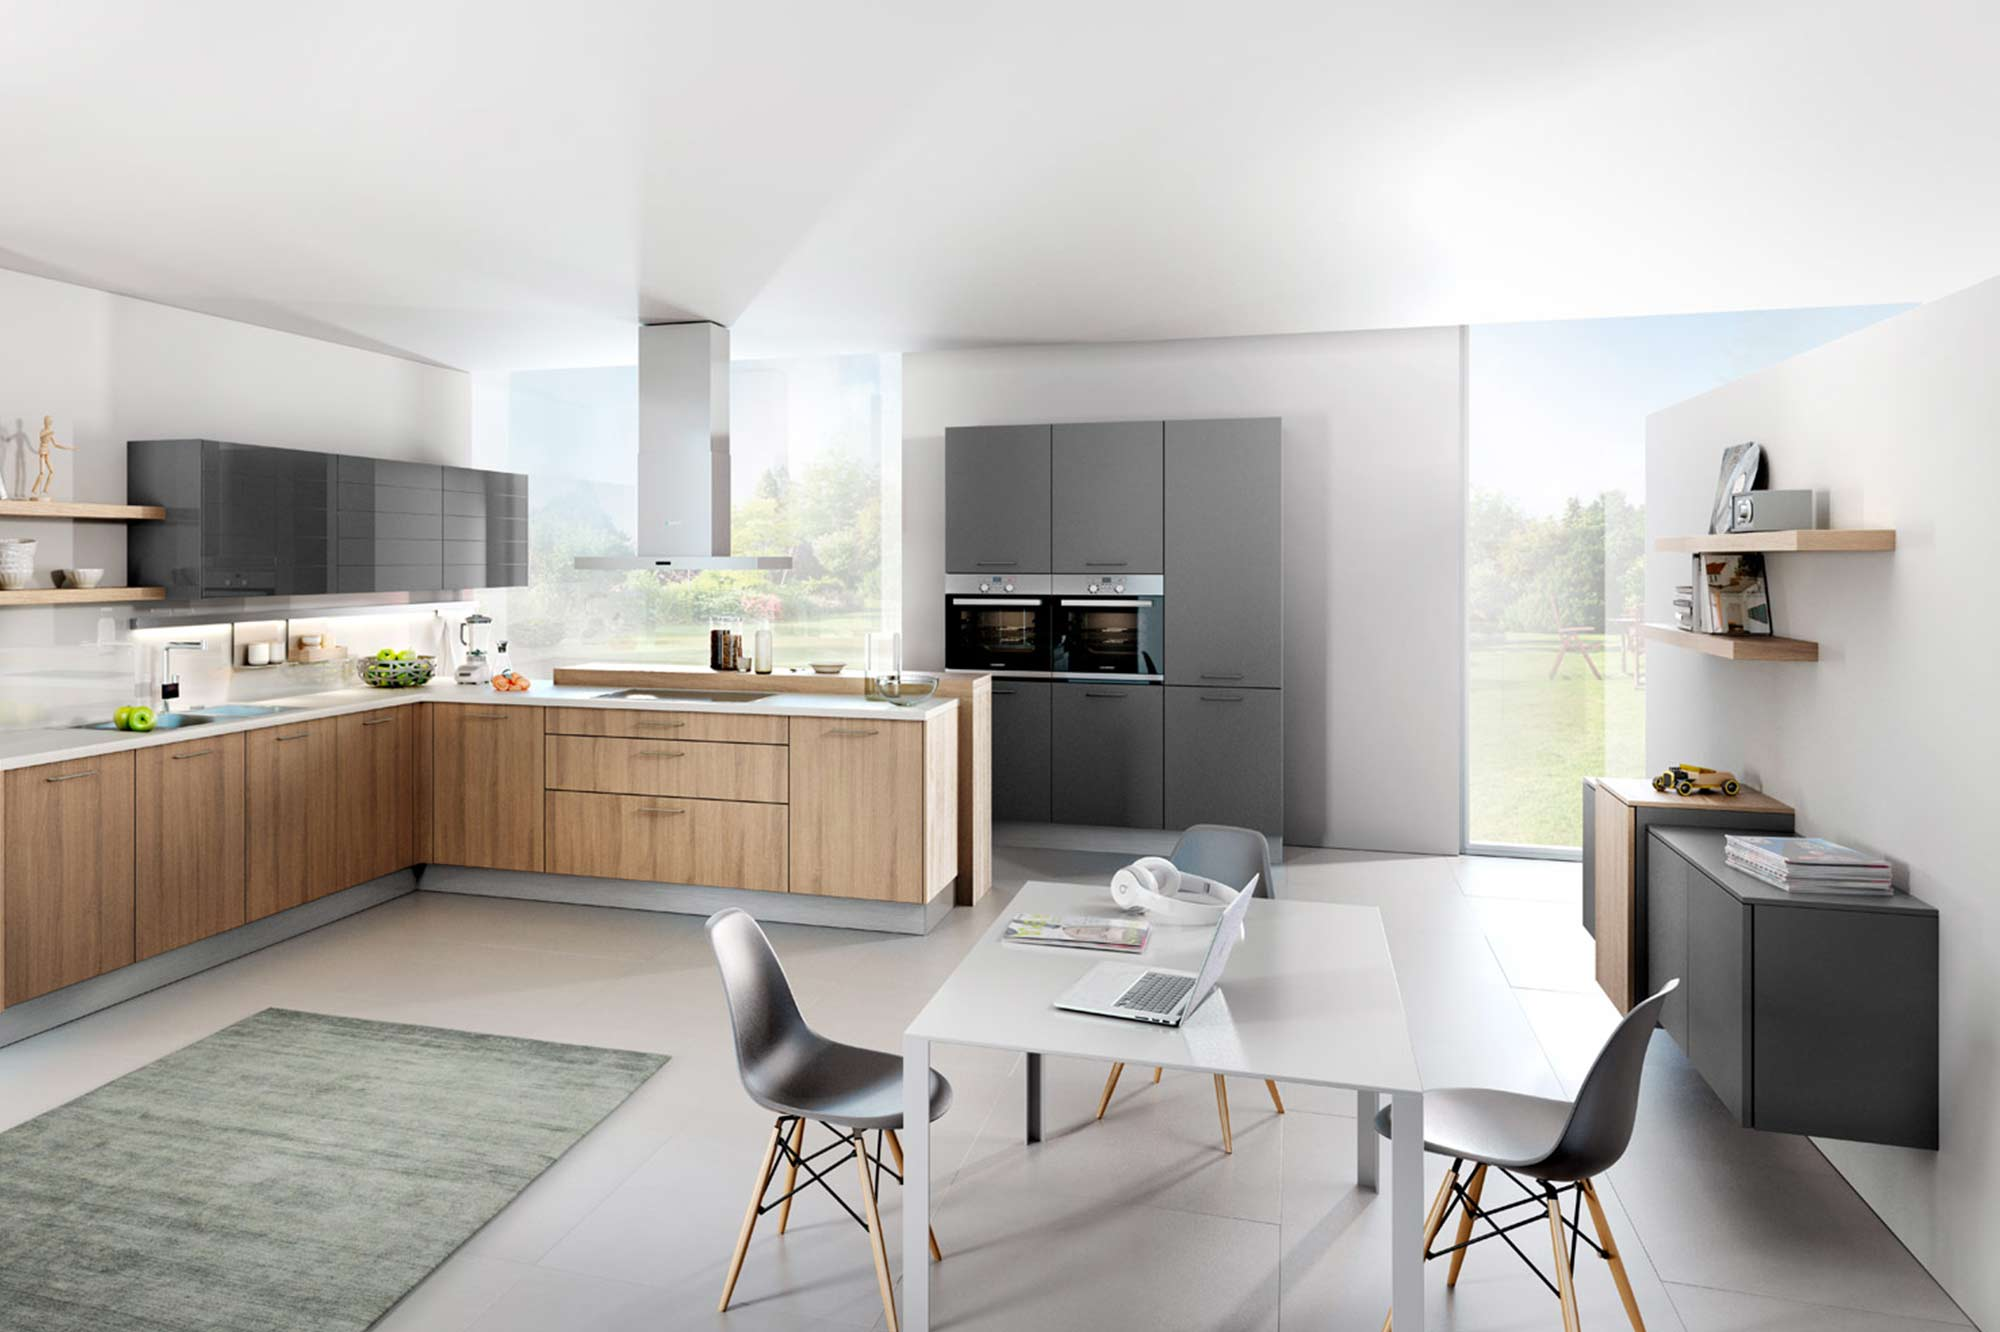 Luxury Kitchens Glasgow 2